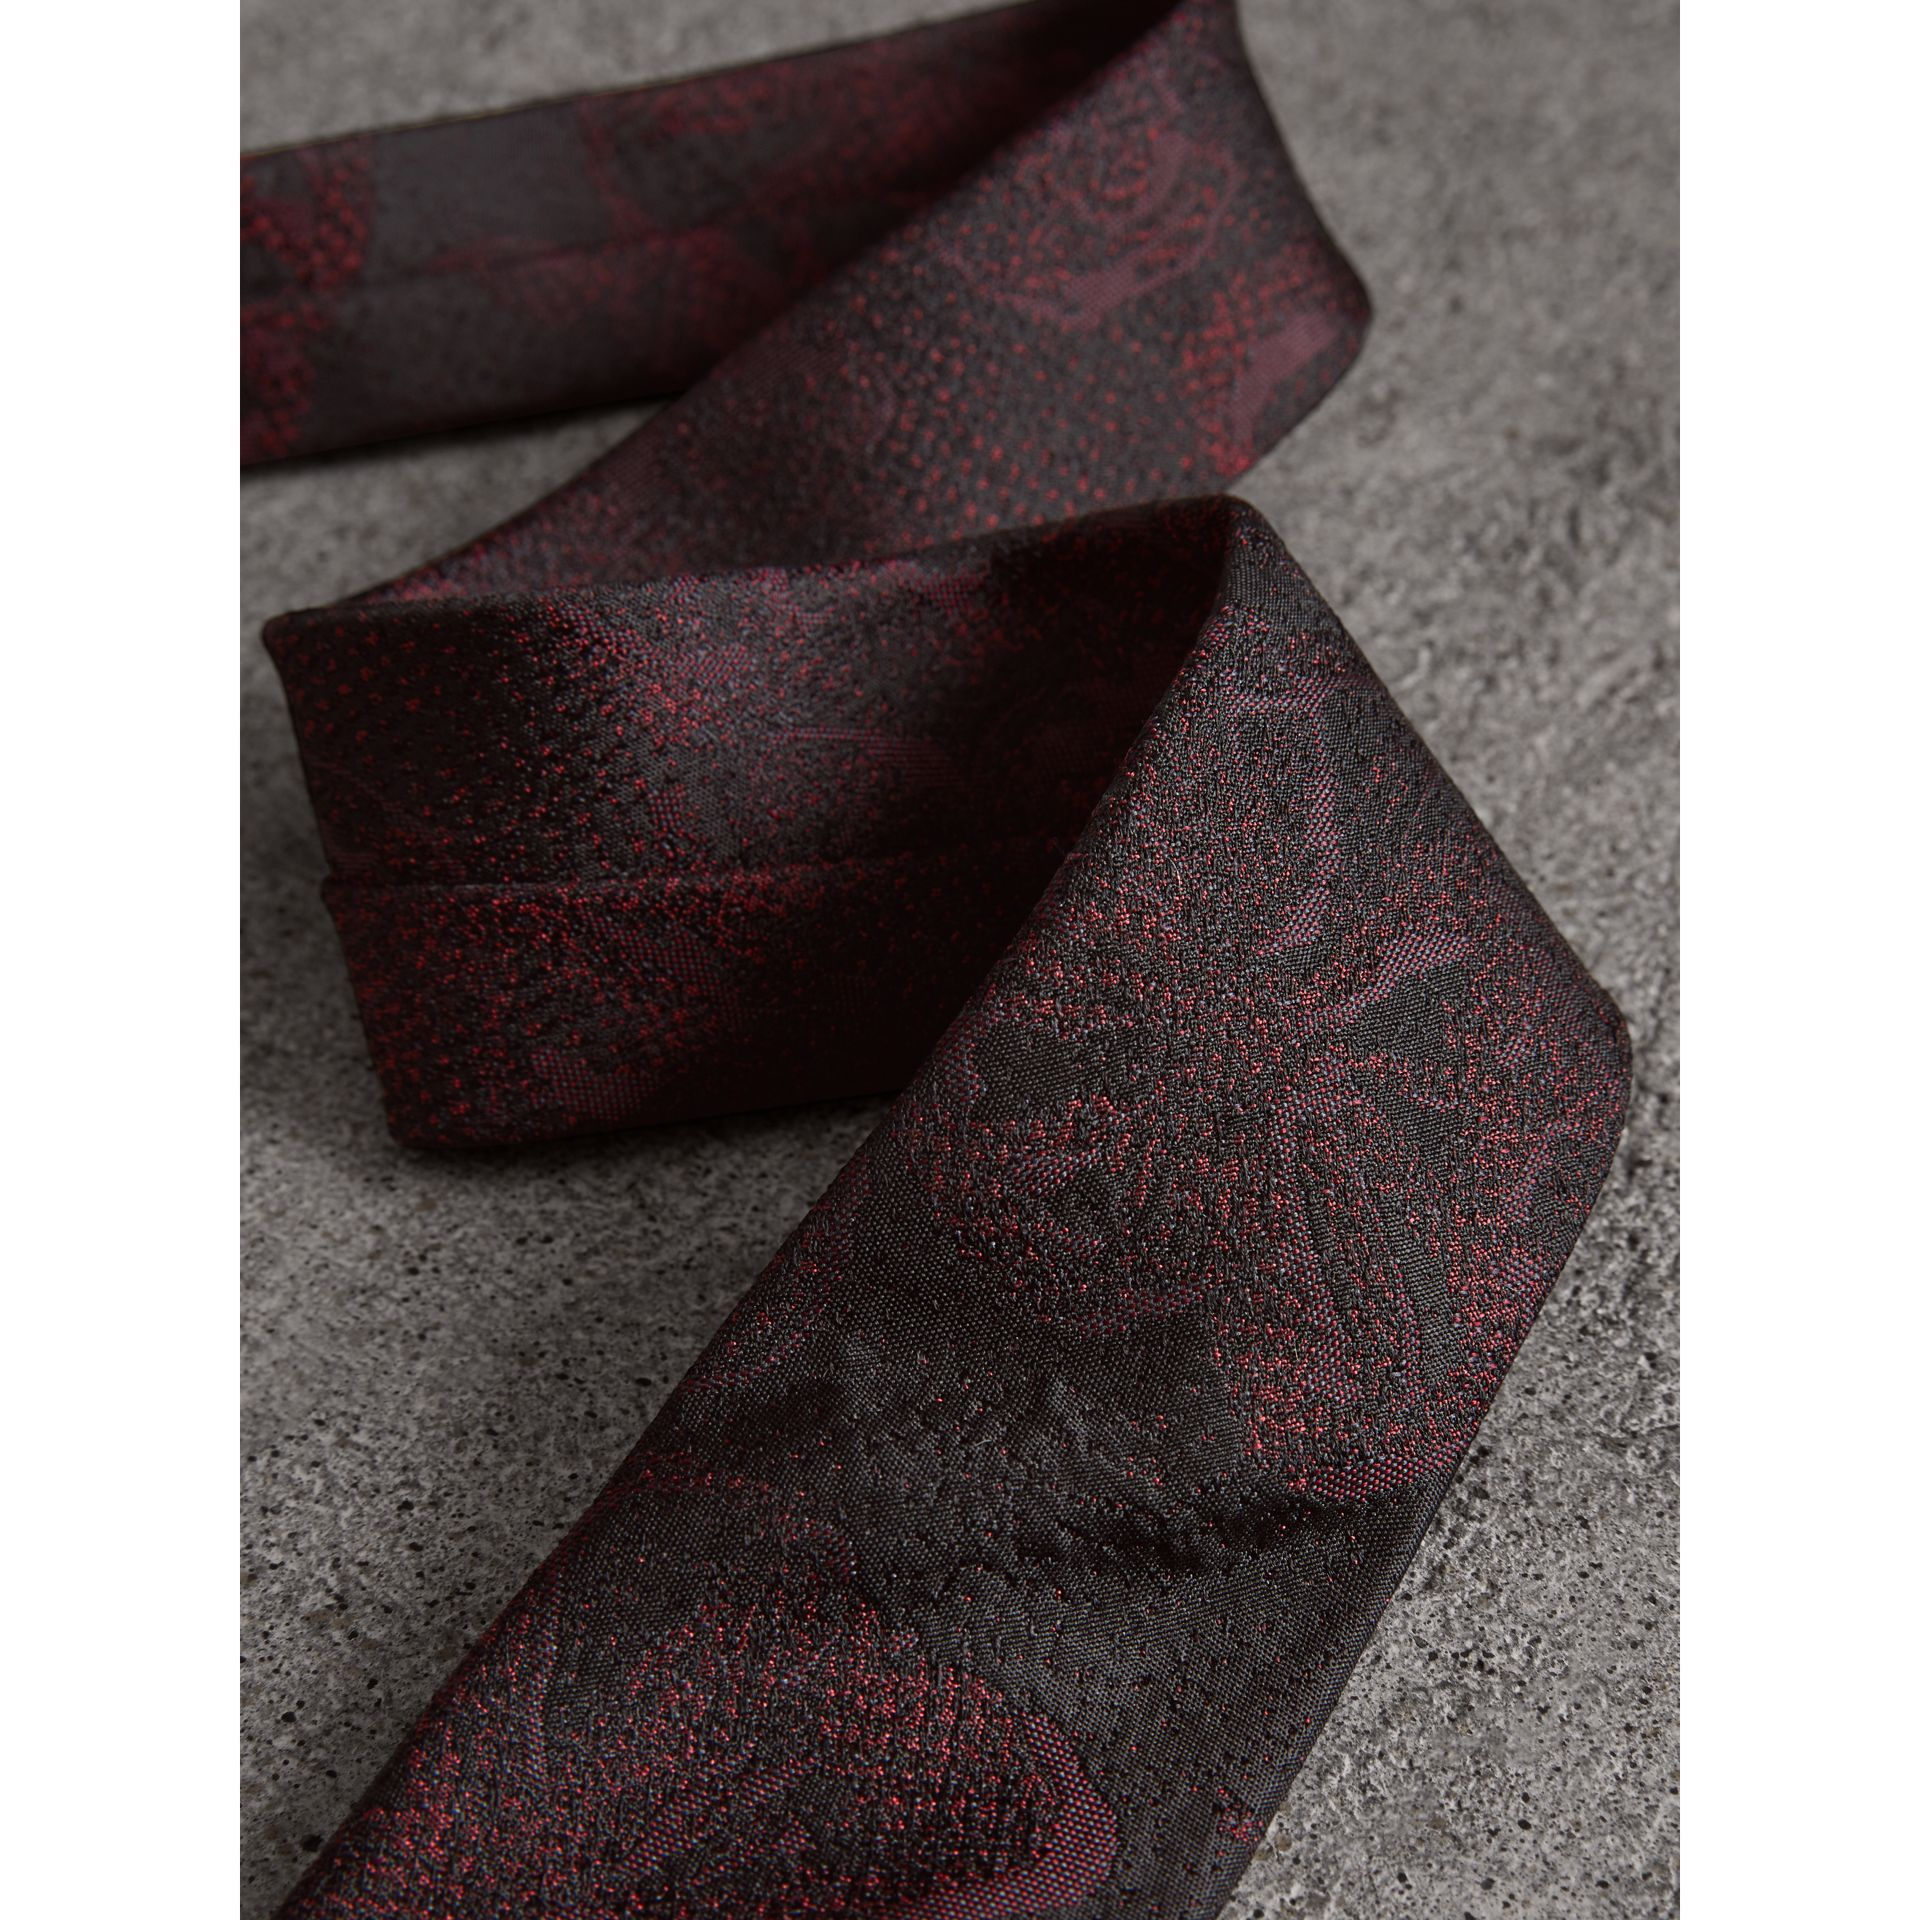 Slim Cut Floral Silk Jacquard Tie in Deep Claret - Men | Burberry Singapore - gallery image 1